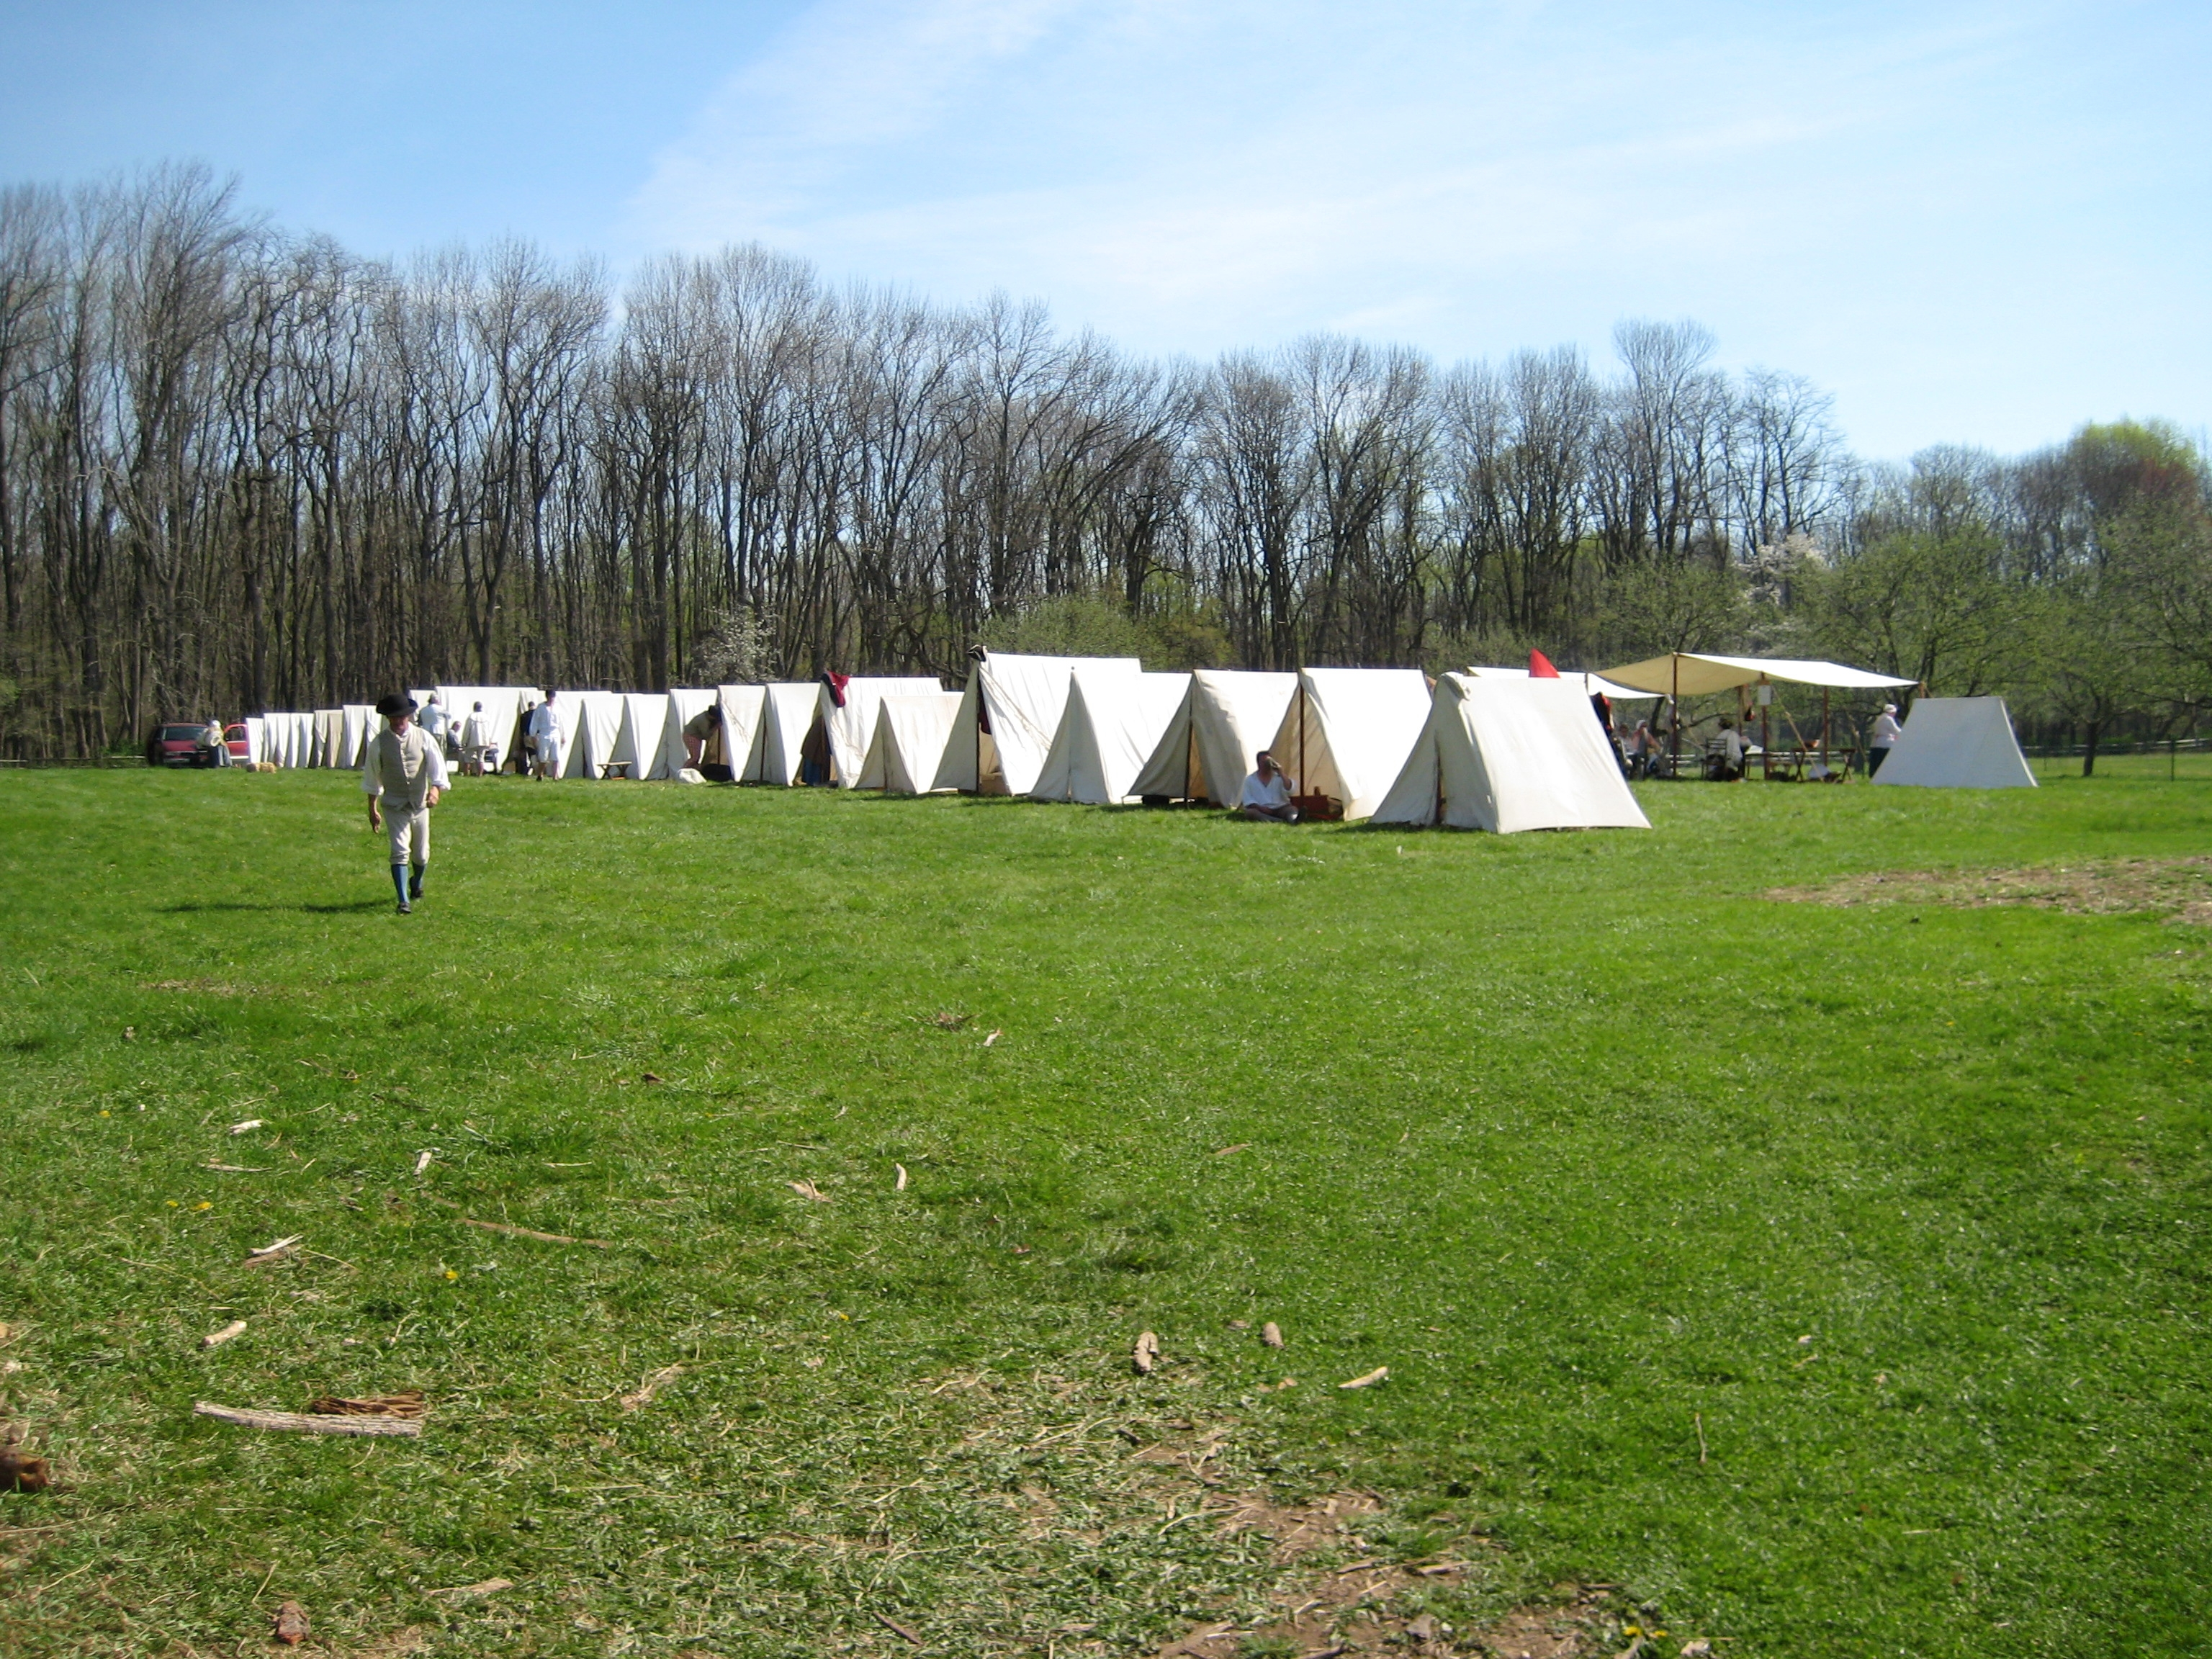 Re-enactment of Encampment at Jockey Hollow Next to Wick Farm